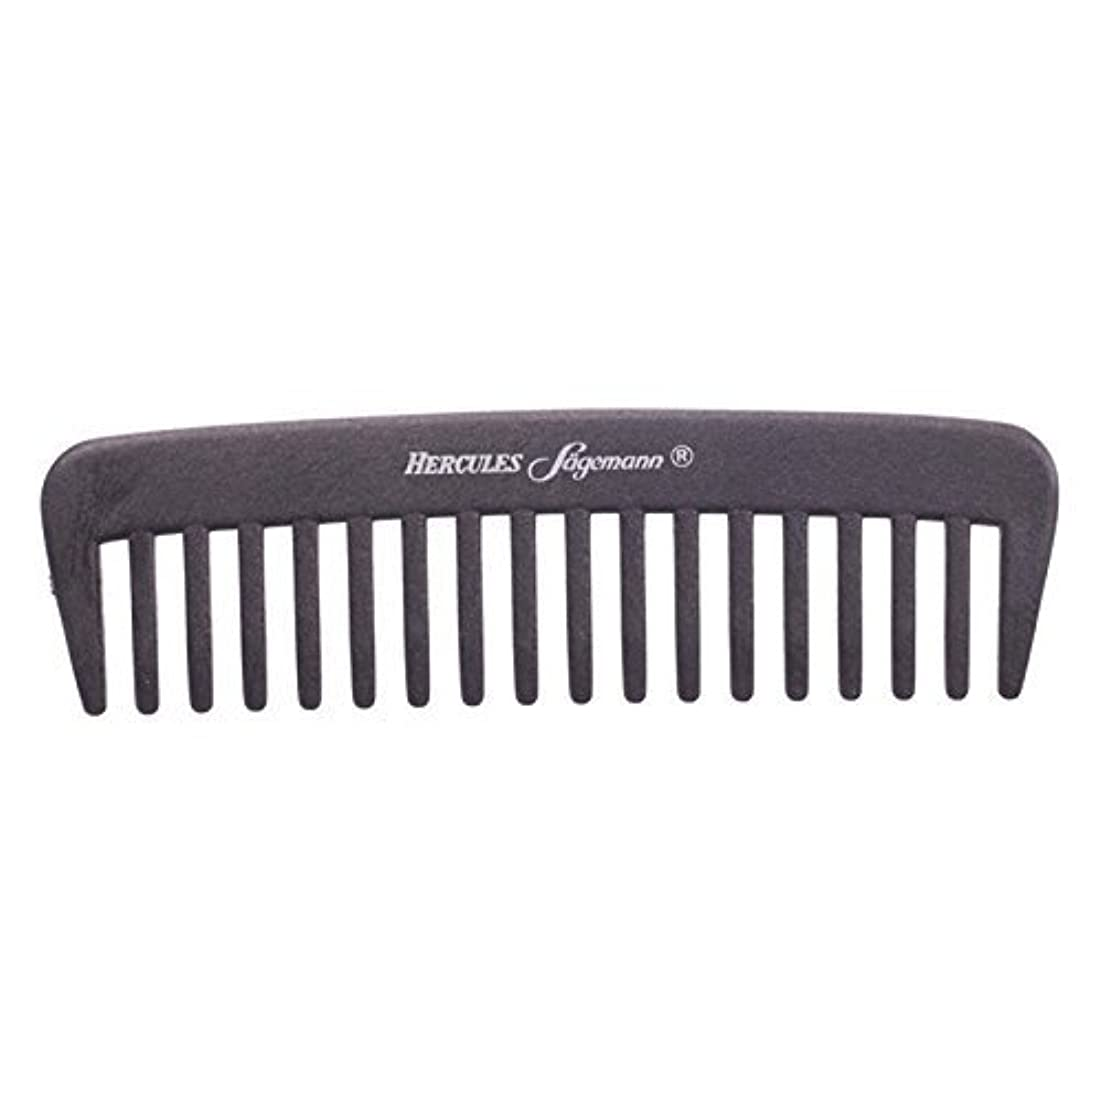 湿度ミット手順Hercules S?gemann Carbon Afro - Hair Styler Comb for Curly Hair | Made in Germany [並行輸入品]